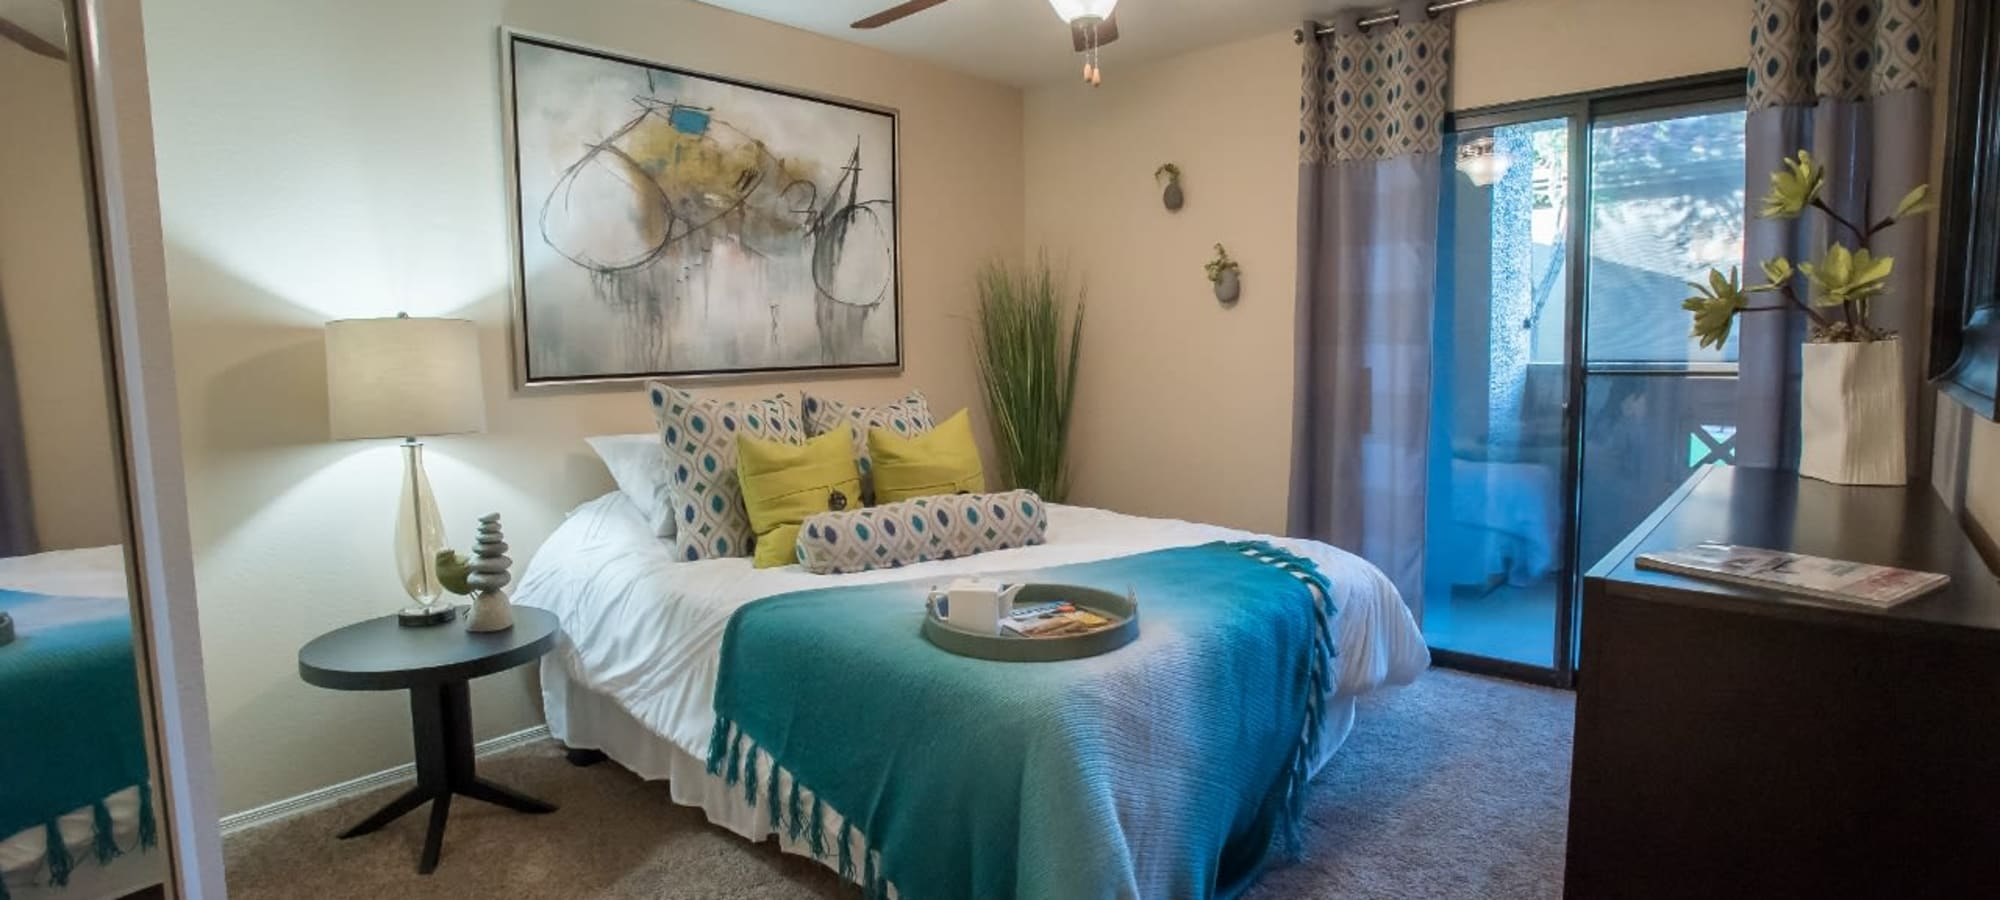 Bedroom with blue accents at The Palms on Scottsdale in Tempe, Arizona